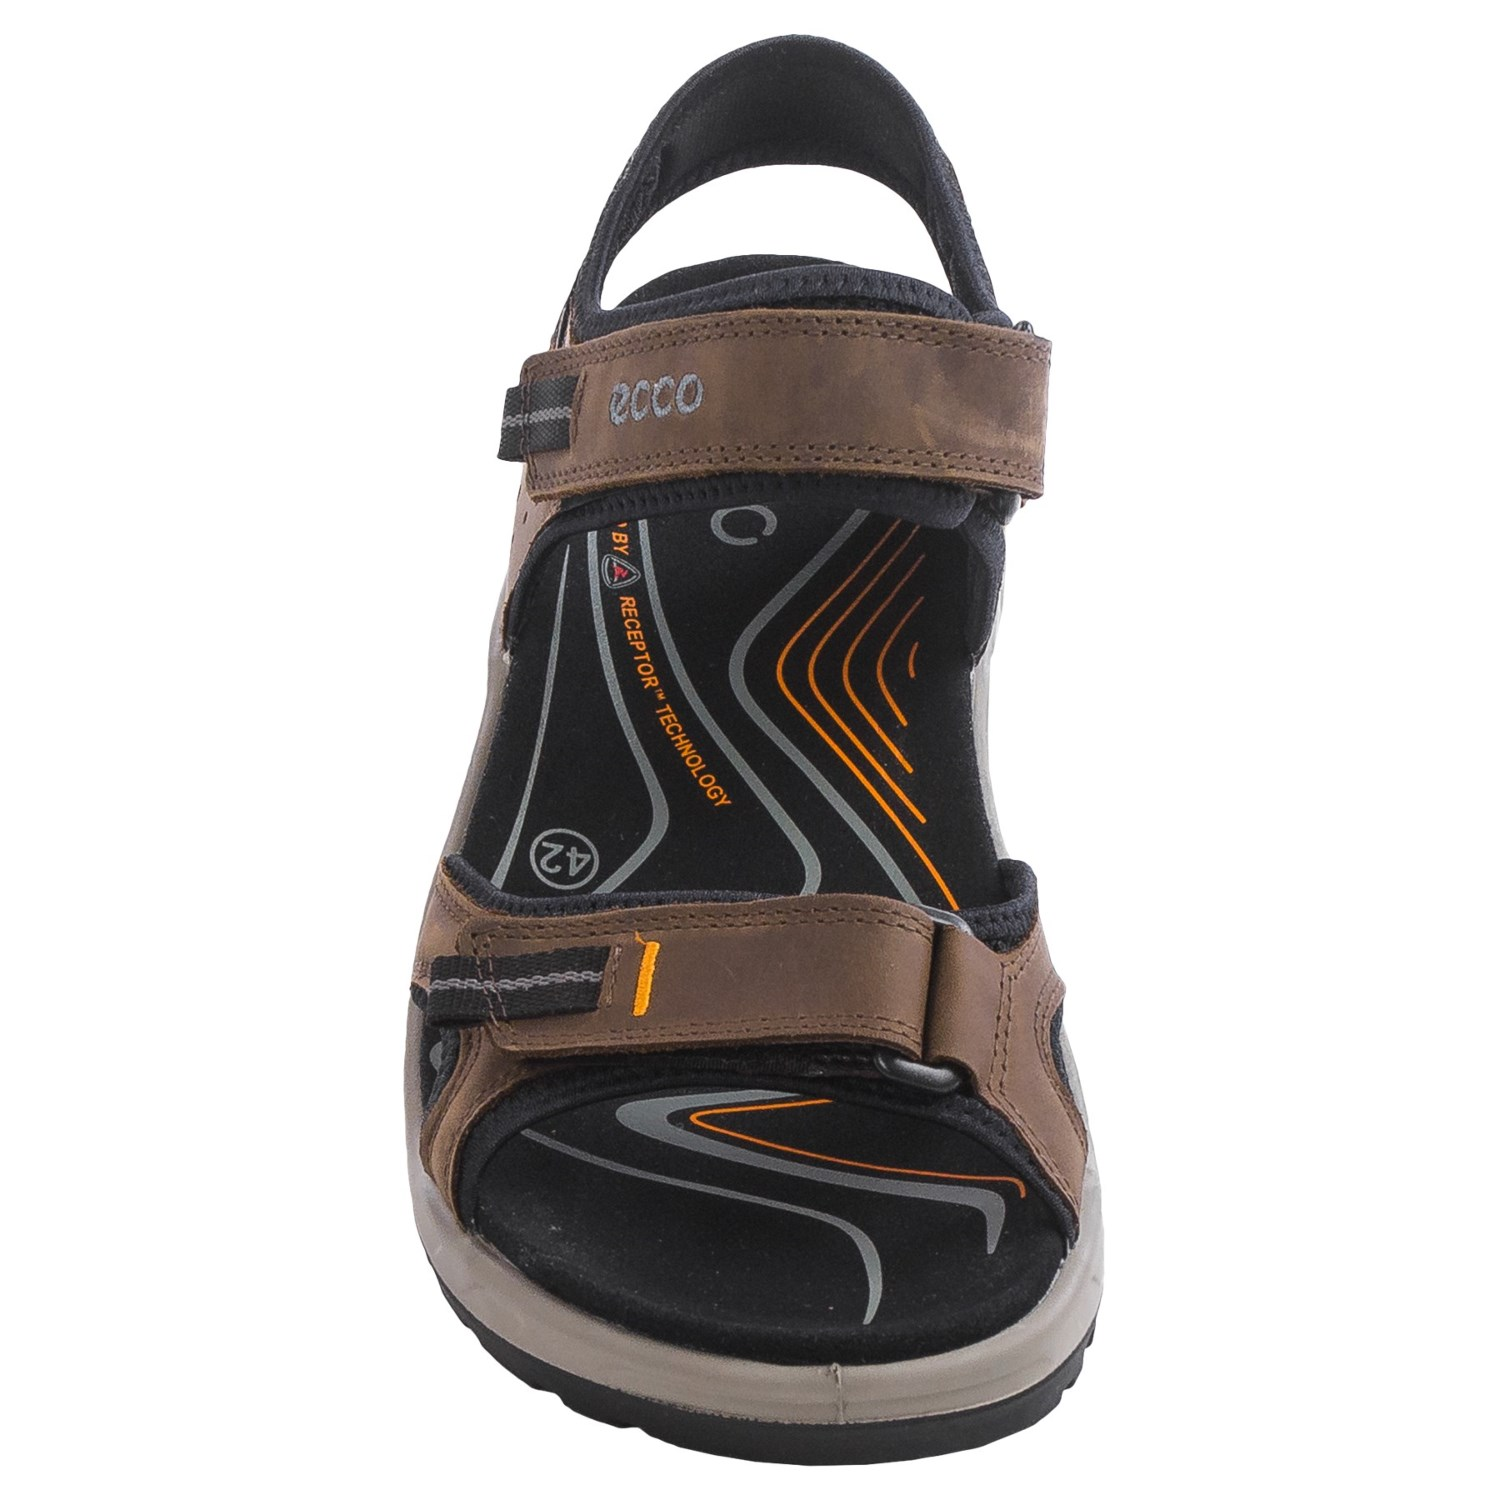 Ecco Yucatan Ii Sport Sandals For Men Save 46